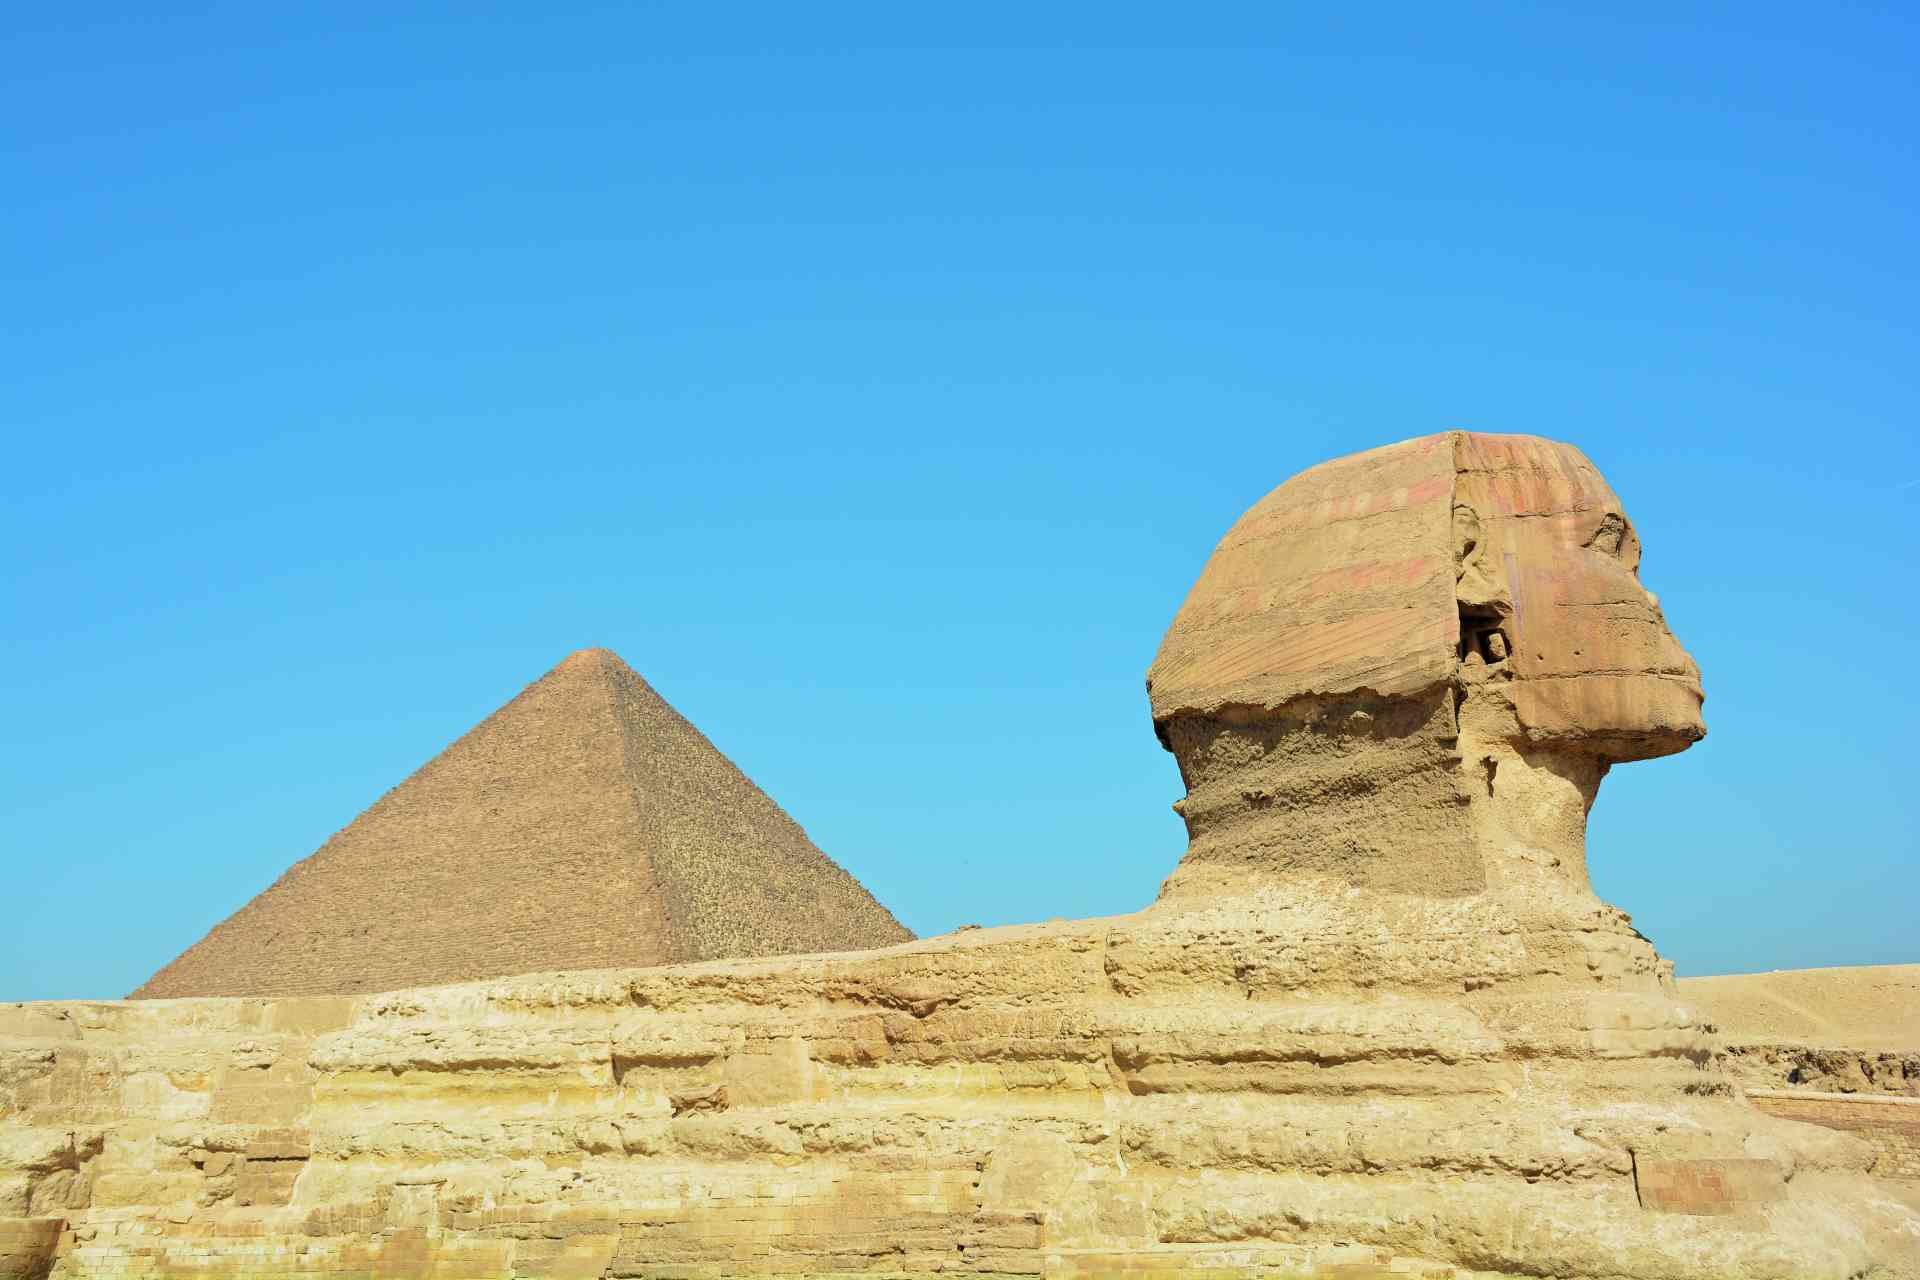 The Great Sphinx and Great Pyramid of Giza, Egypt by Pamela Frisari